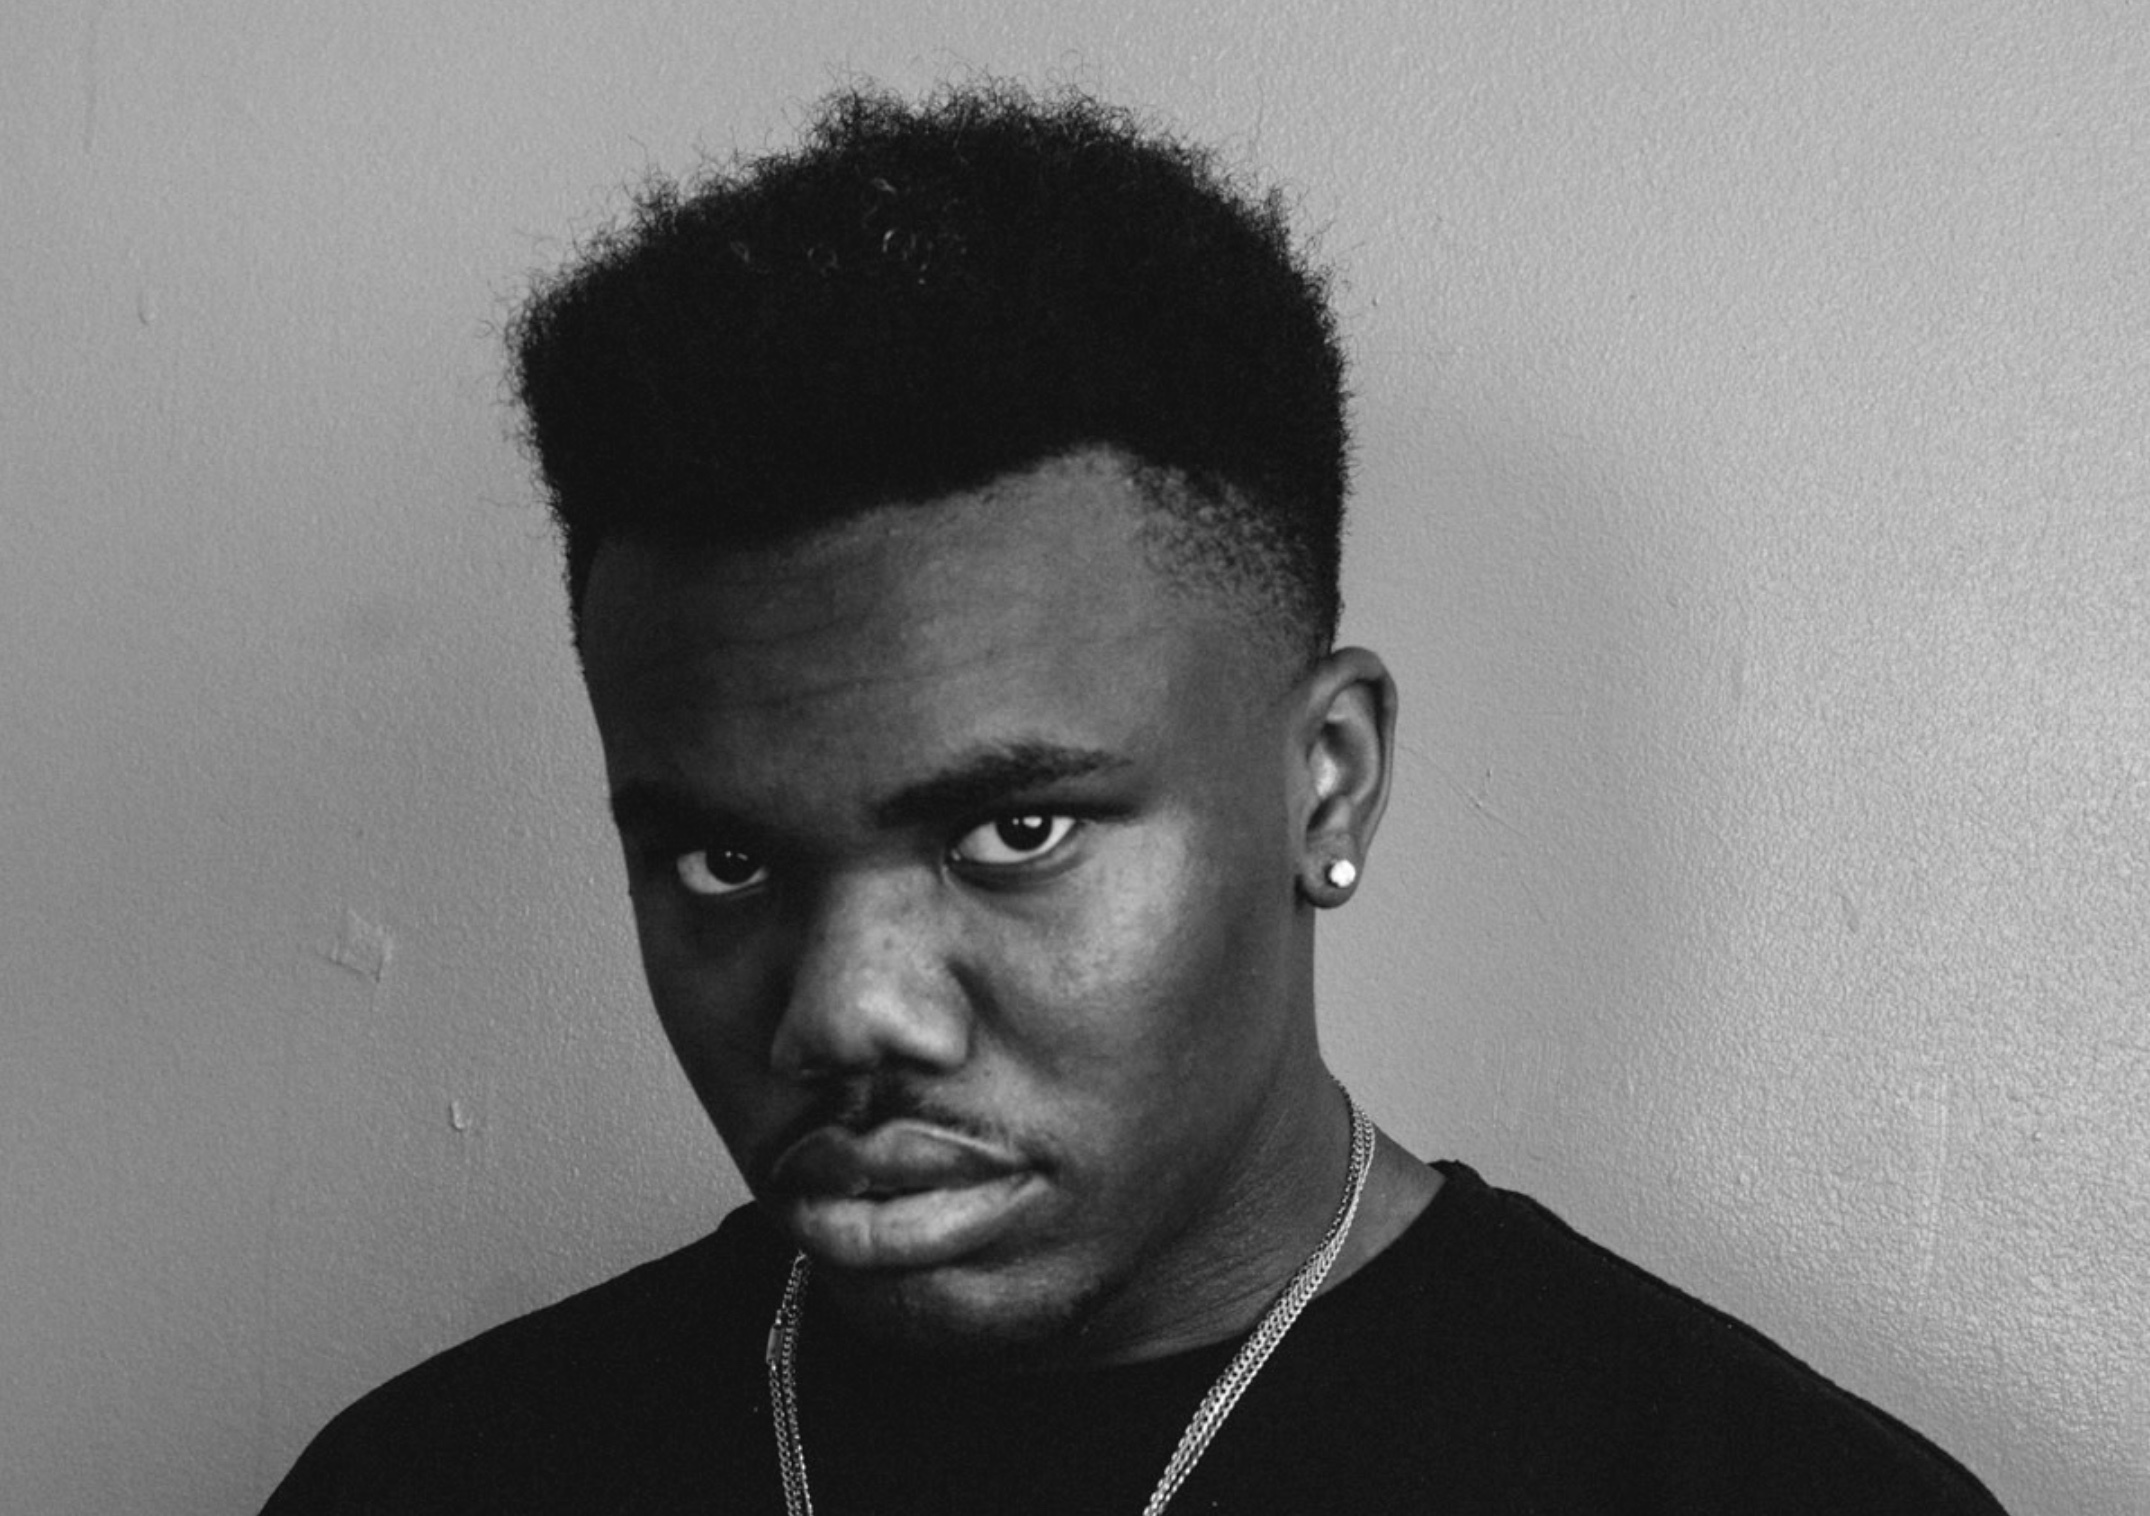 Baby Keem Announces That His New Album 'the melodic blue' Will Be Out This  Friday   HipHop-N-More